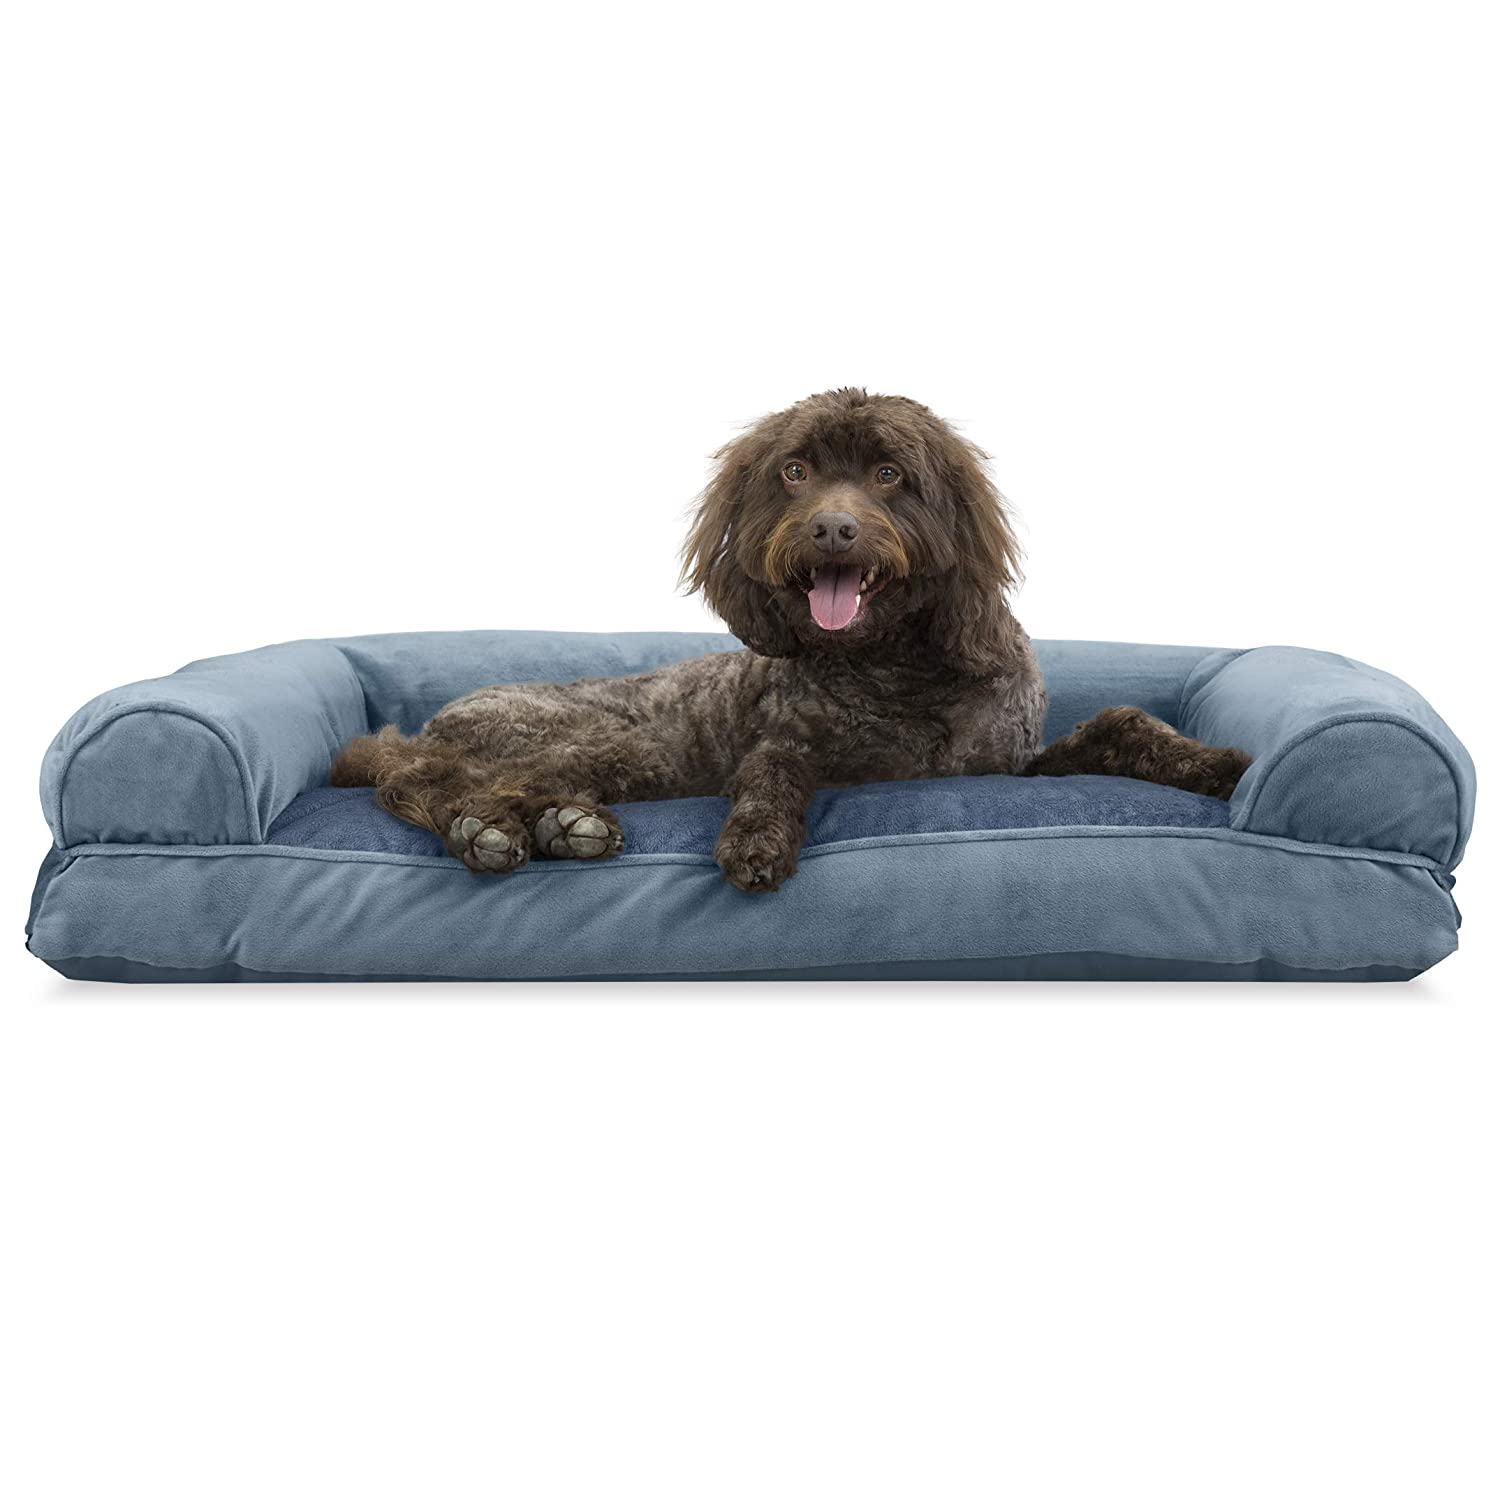 Harbor bluee L Harbor bluee L Furhaven Pet Dog Bed   Faux Fur & Velvet Pillow Sofa-Style Couch Pet Bed for Dogs & Cats, Harbor bluee, Large